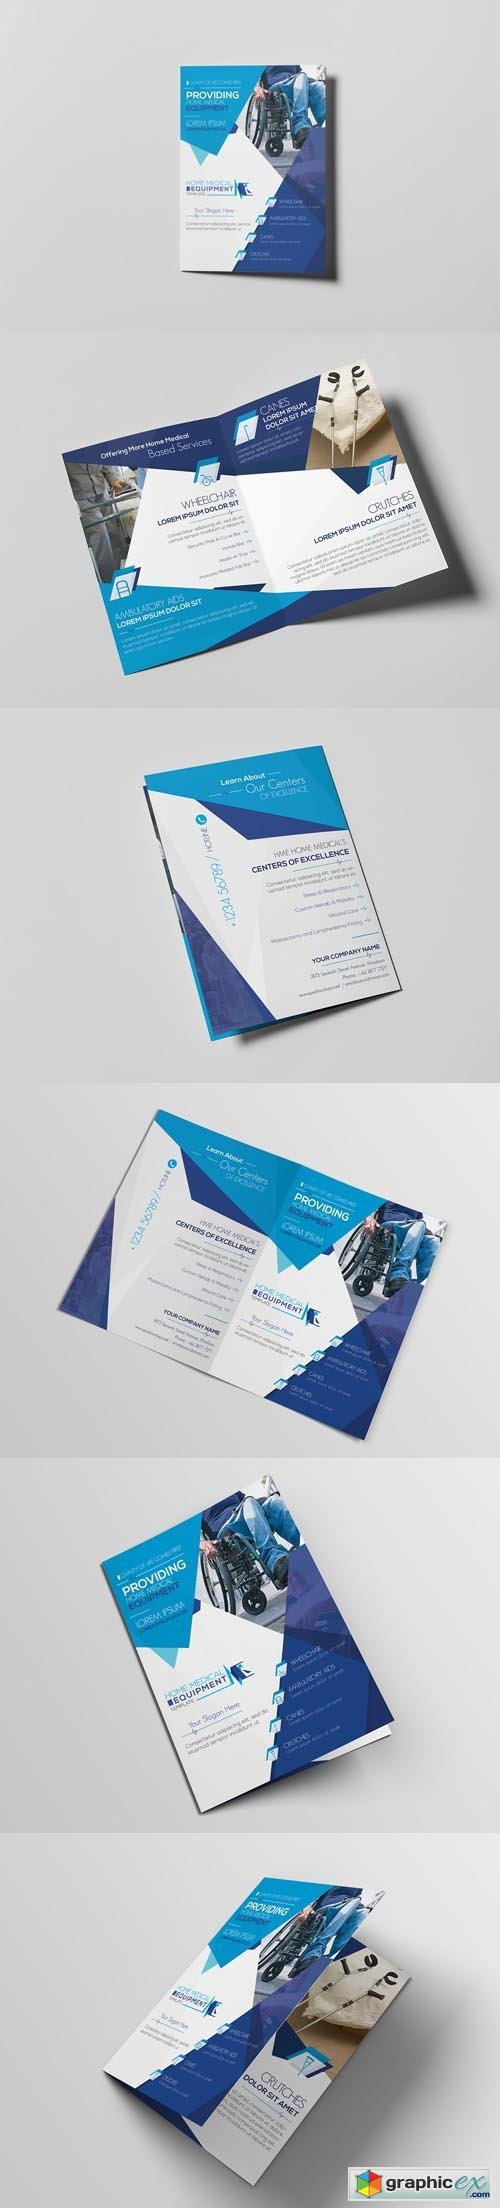 Home Medical Equipment/ A5 Brochure Template